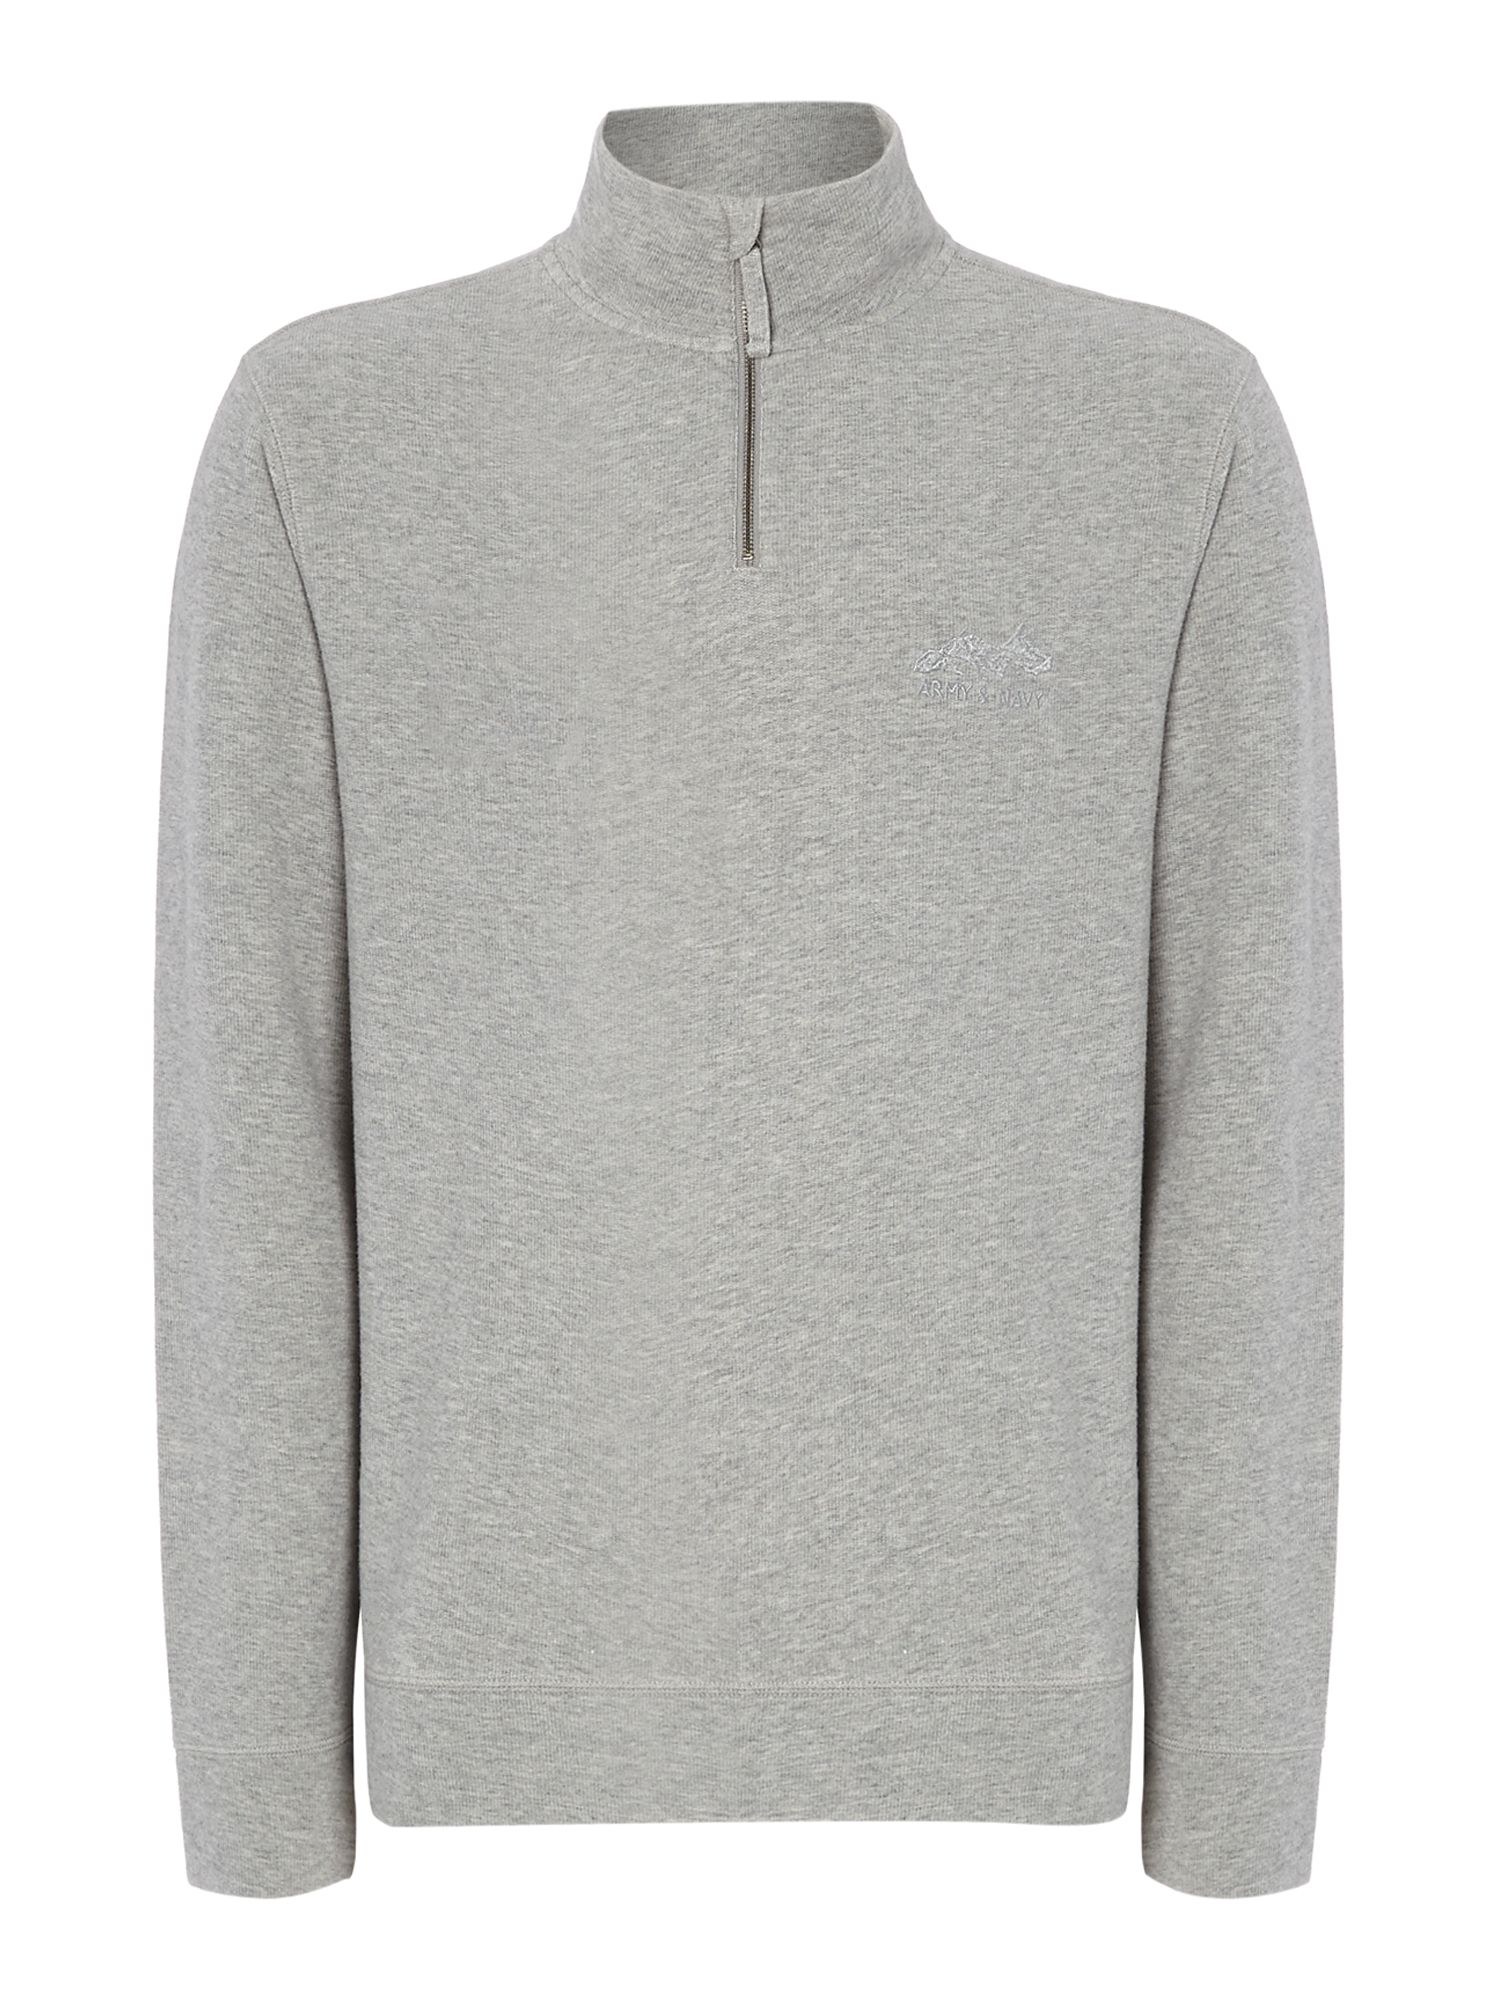 Spencer half zip